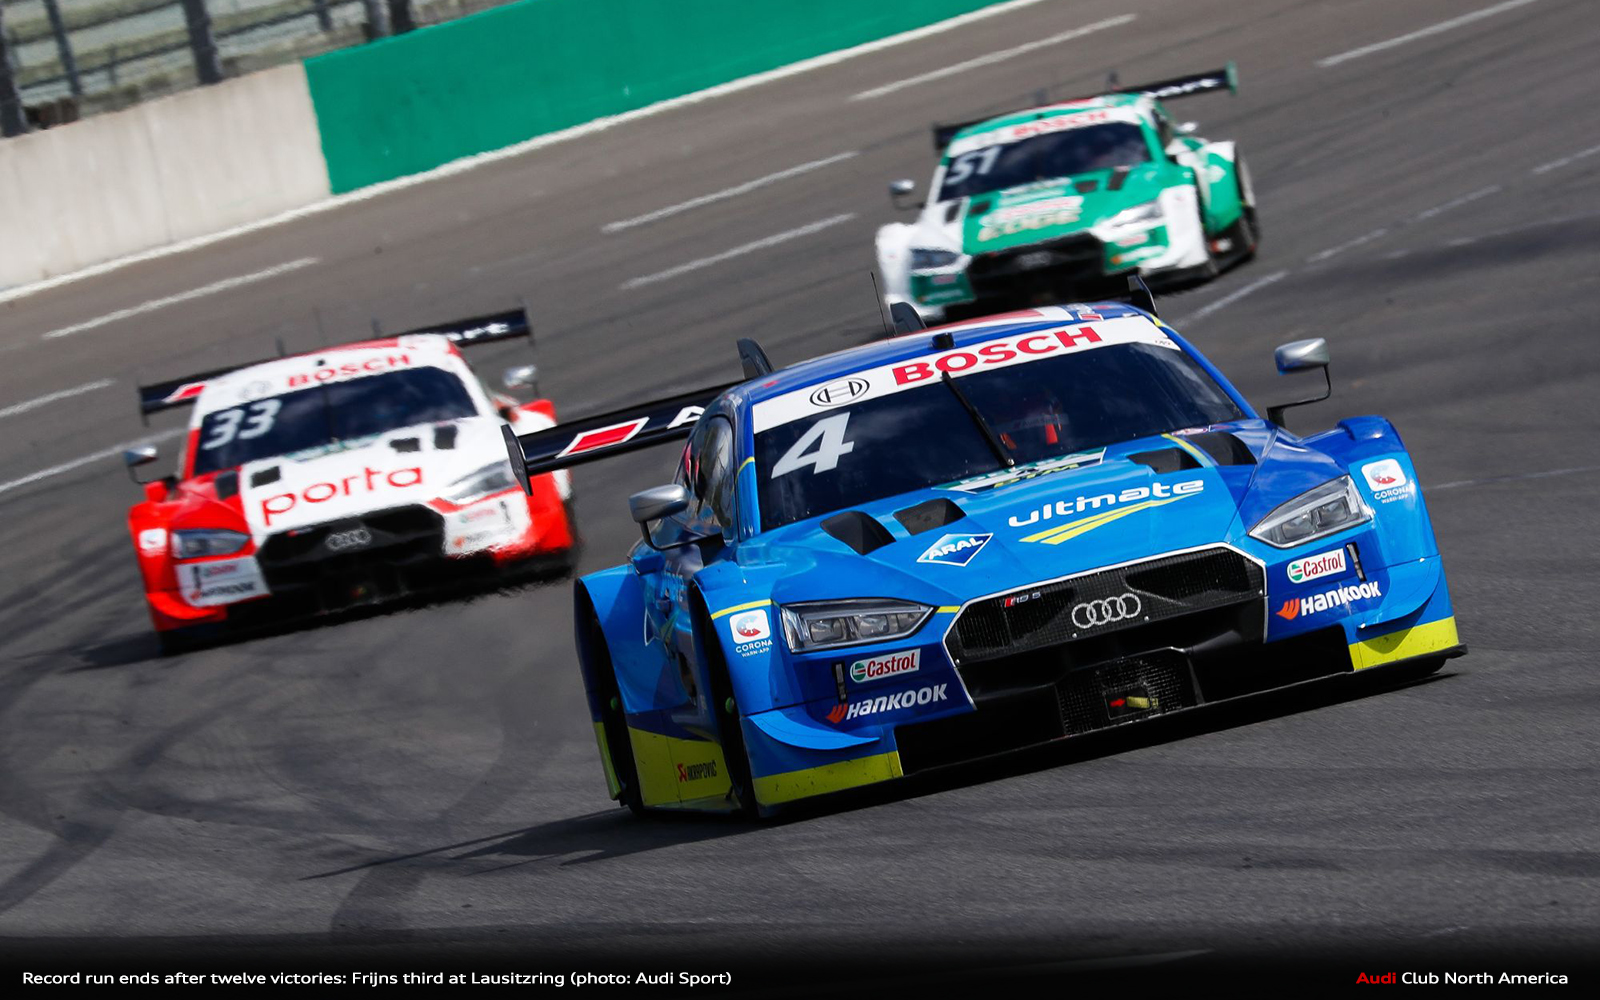 Record Run Ends After Twelve Victories: Frijns Third at Lausitzring